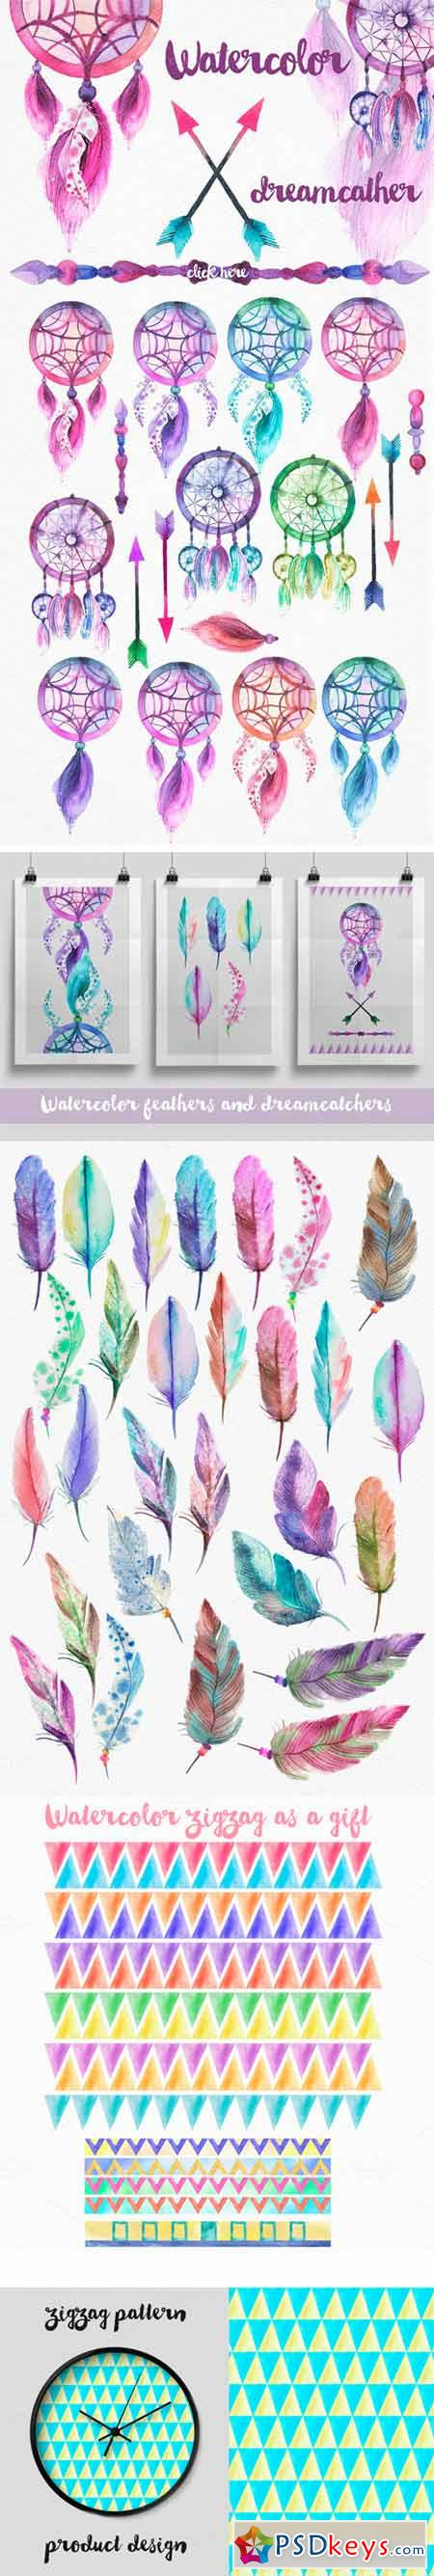 Watercolor Feathers & Dreamcatchers 295661